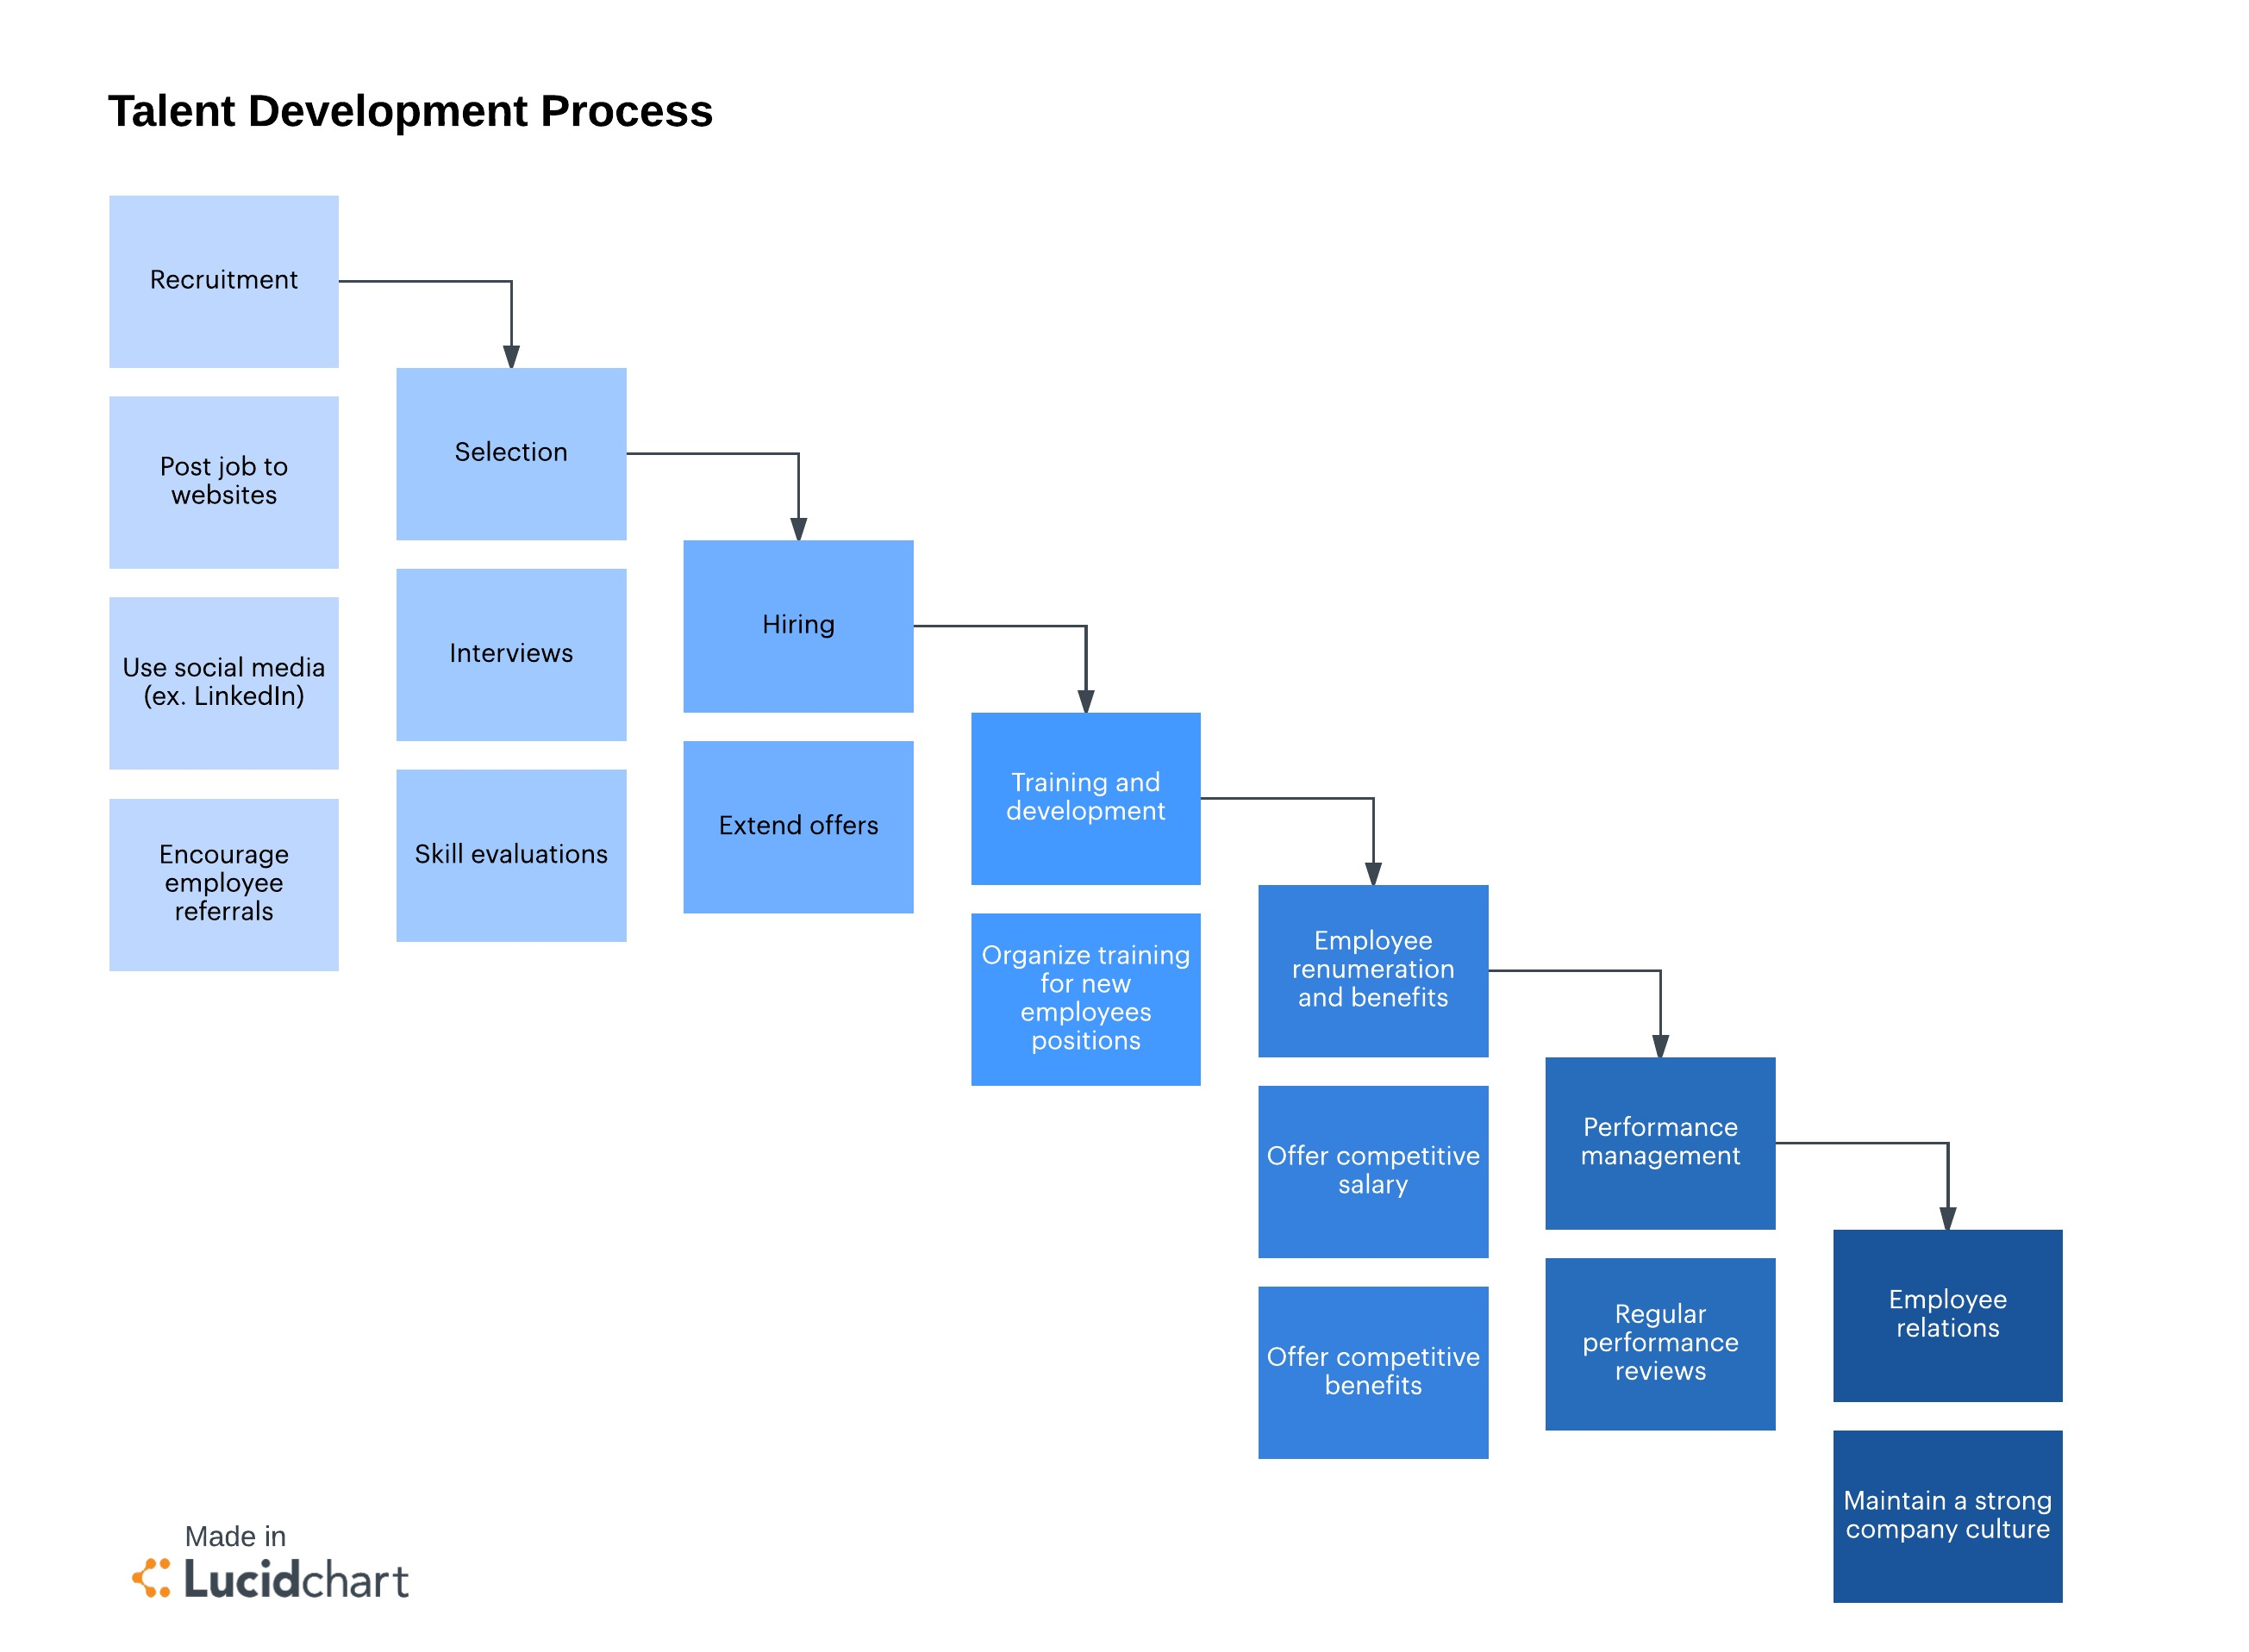 Talent development process - strategic human resources planning